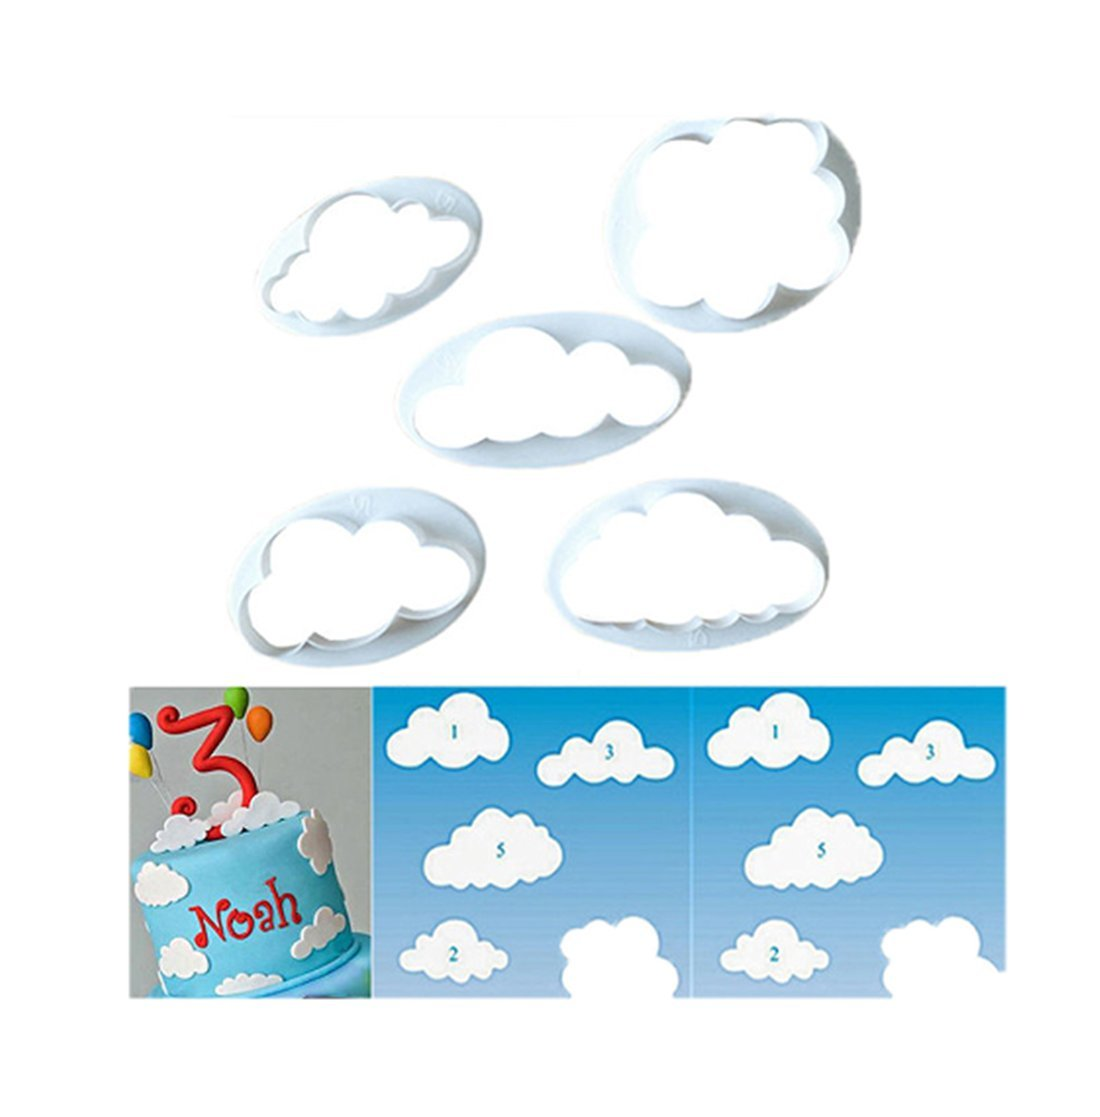 Edtoy 5PCS Clouds shape Cookie Biscuit Cutter Mold Set, DIY Cake Fondant Decorating Mold